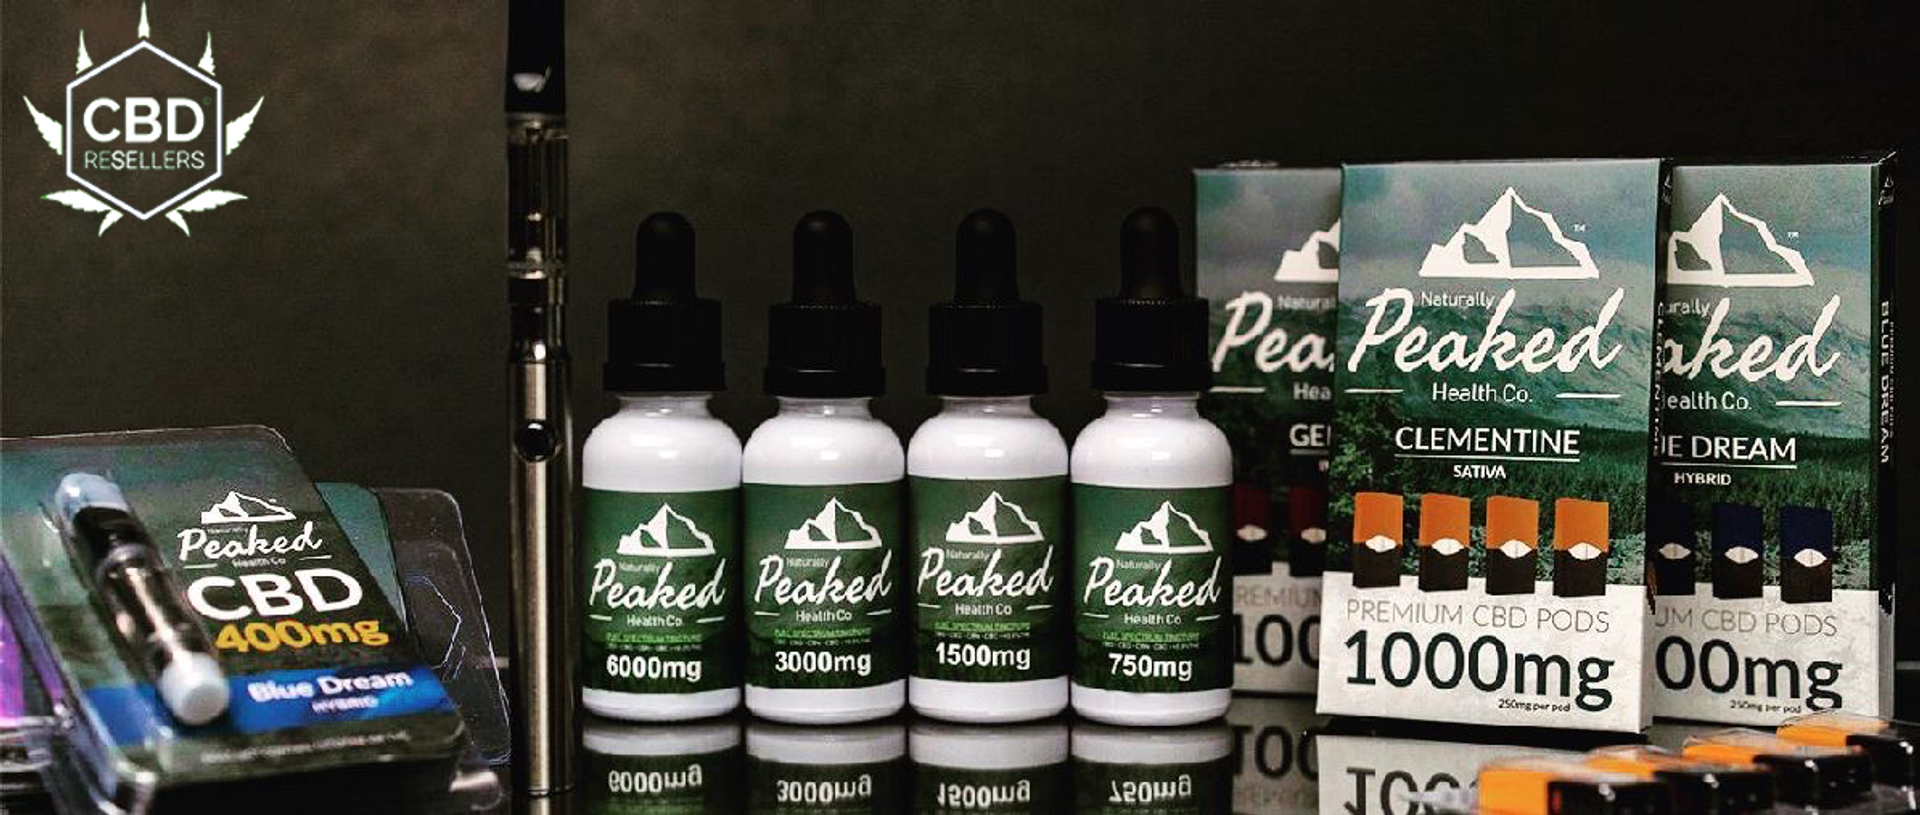 Naturally Peaked All Organic CBD; Live Life on your terms; Get Peaked